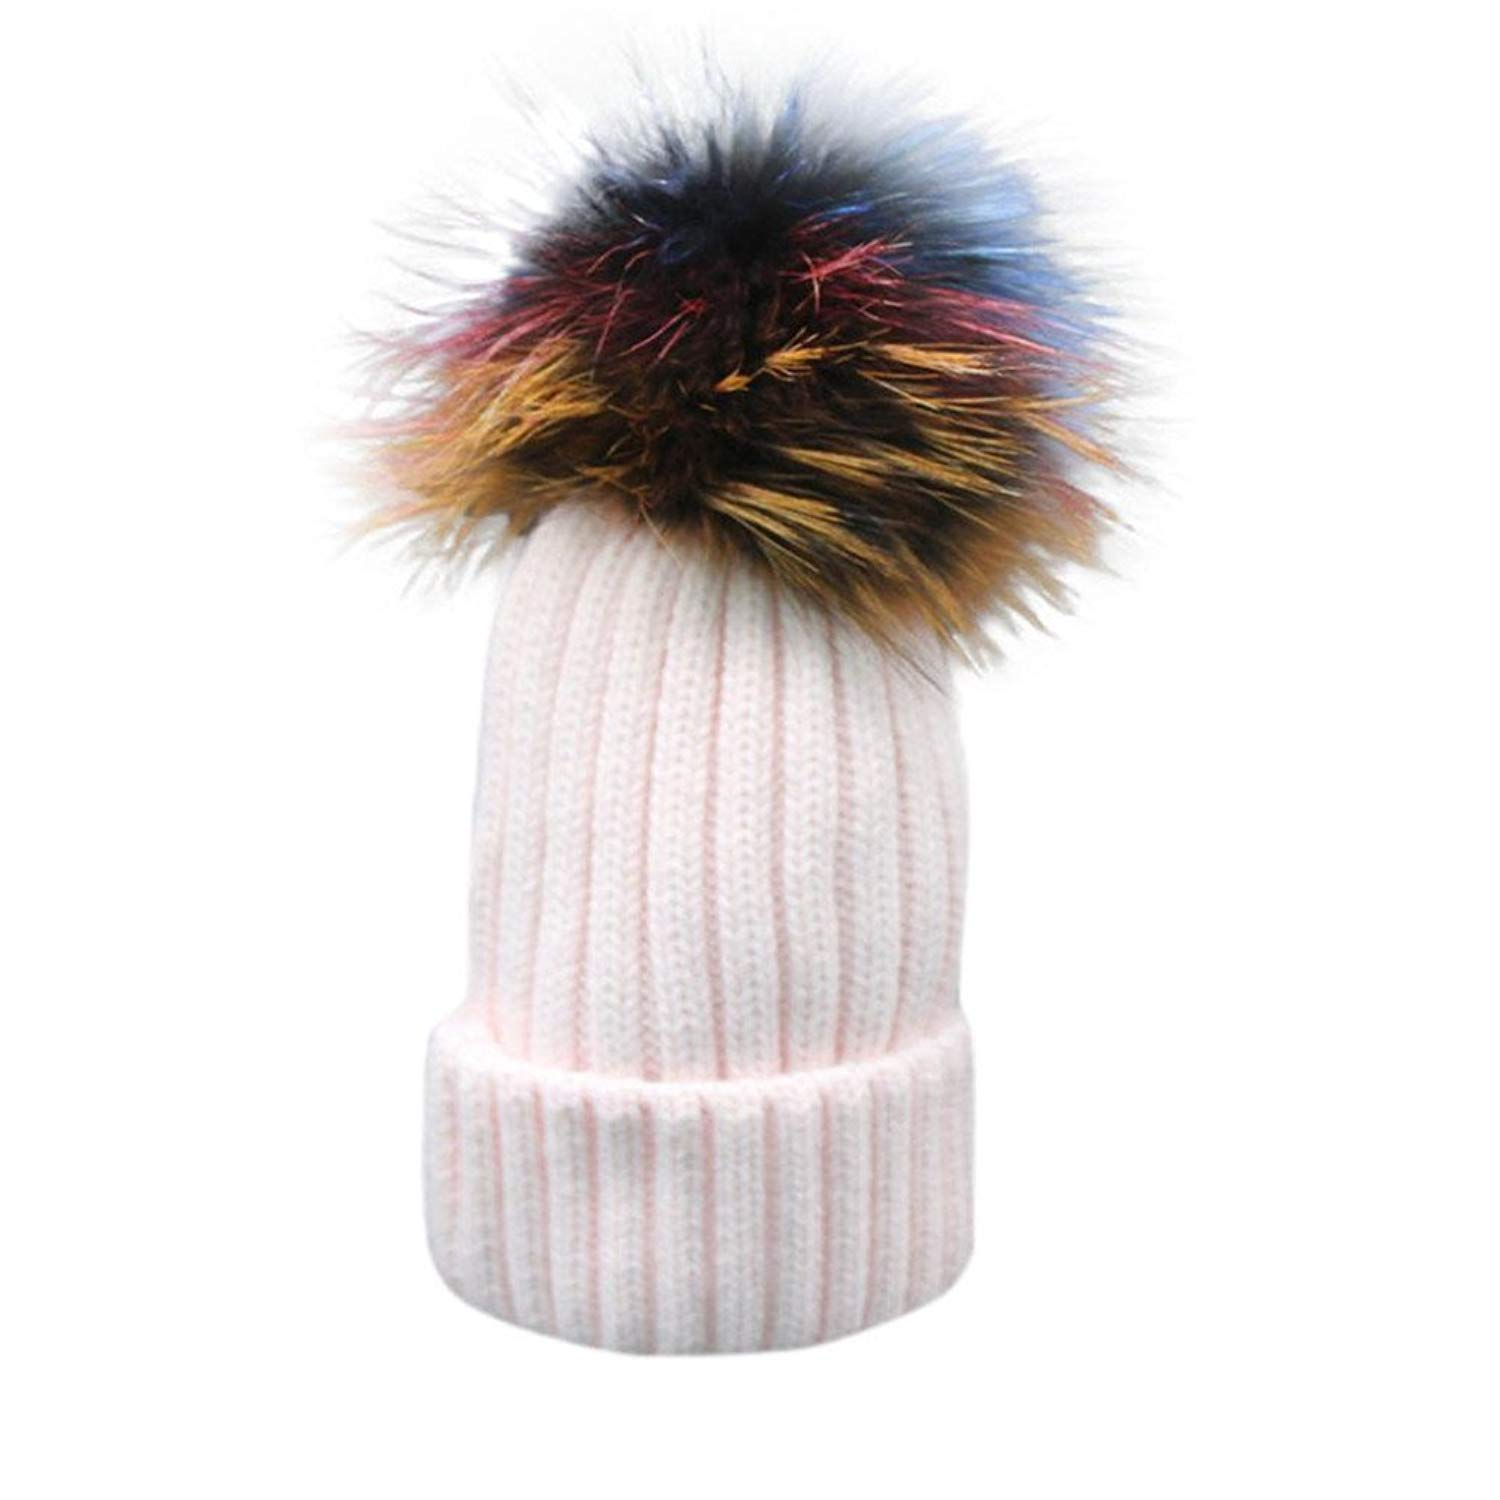 136cd13e1 Cheap Real Raccoon Skin Hats, find Real Raccoon Skin Hats deals on ...